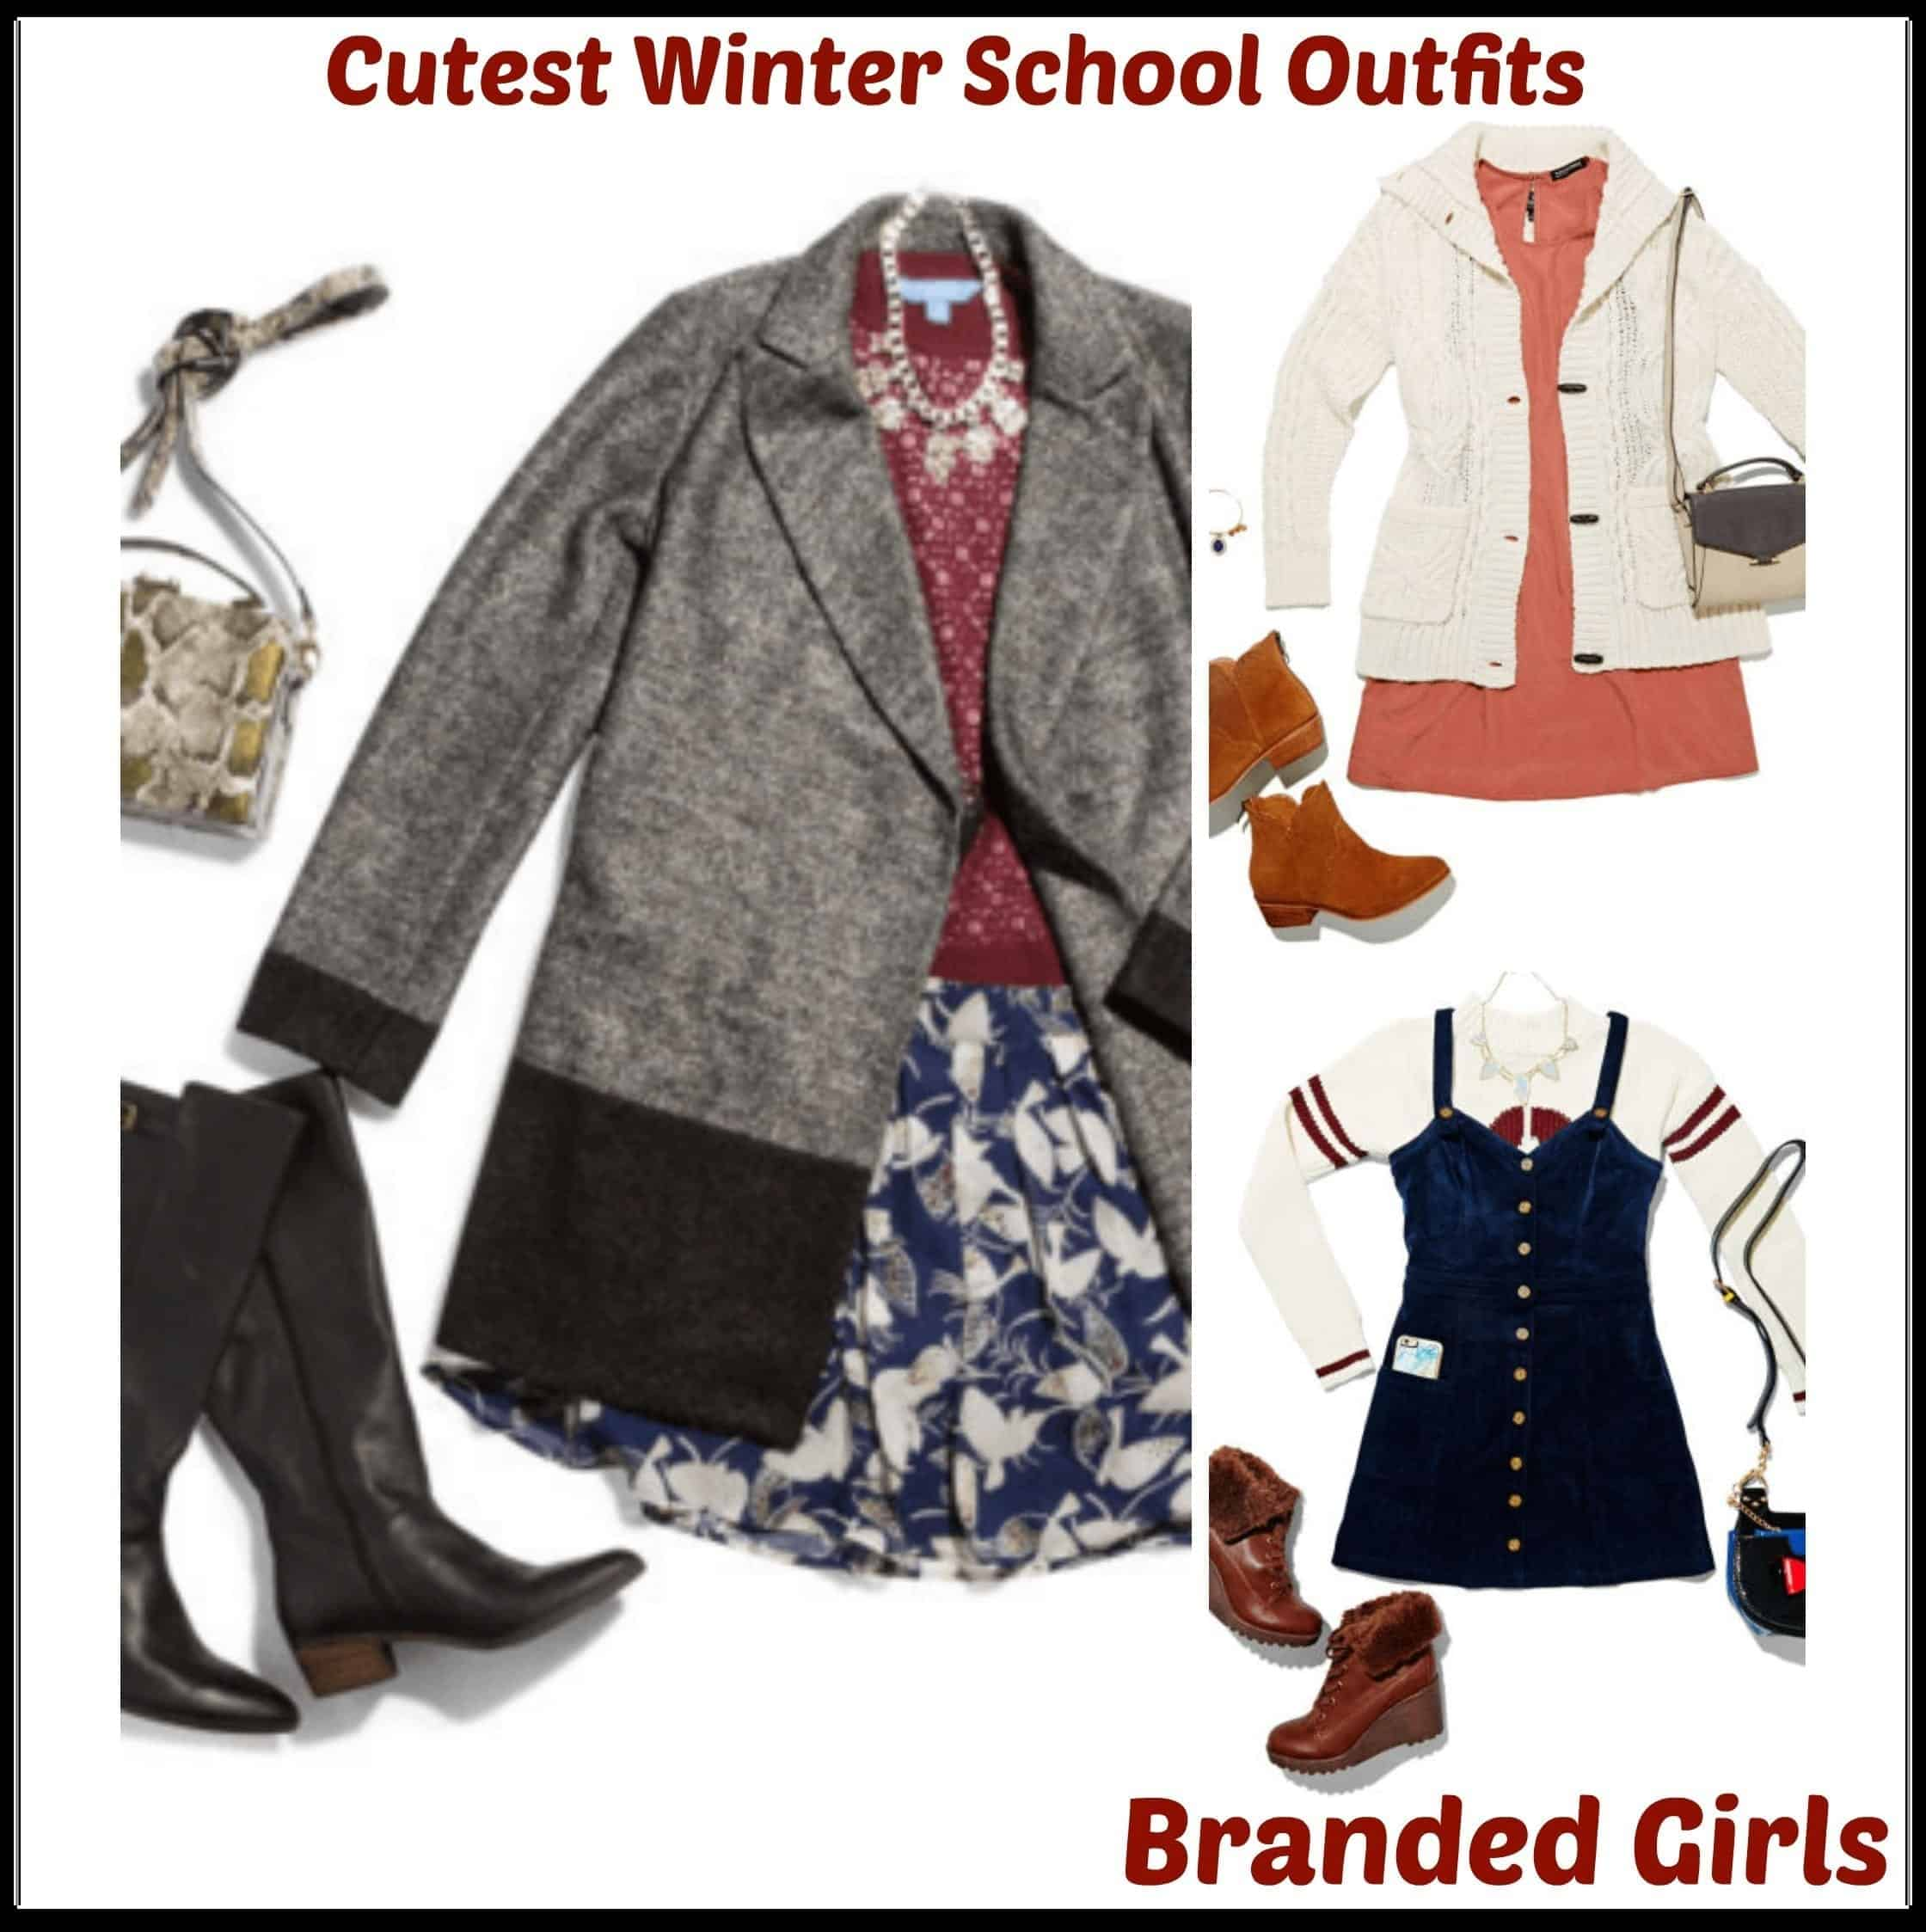 Cute Winter Outfits Teenage Girls-17 Hot Winter Fashion Ideas Cute Winter Outfits Teenage Girls-17 Hot Winter Fashion Ideas new images